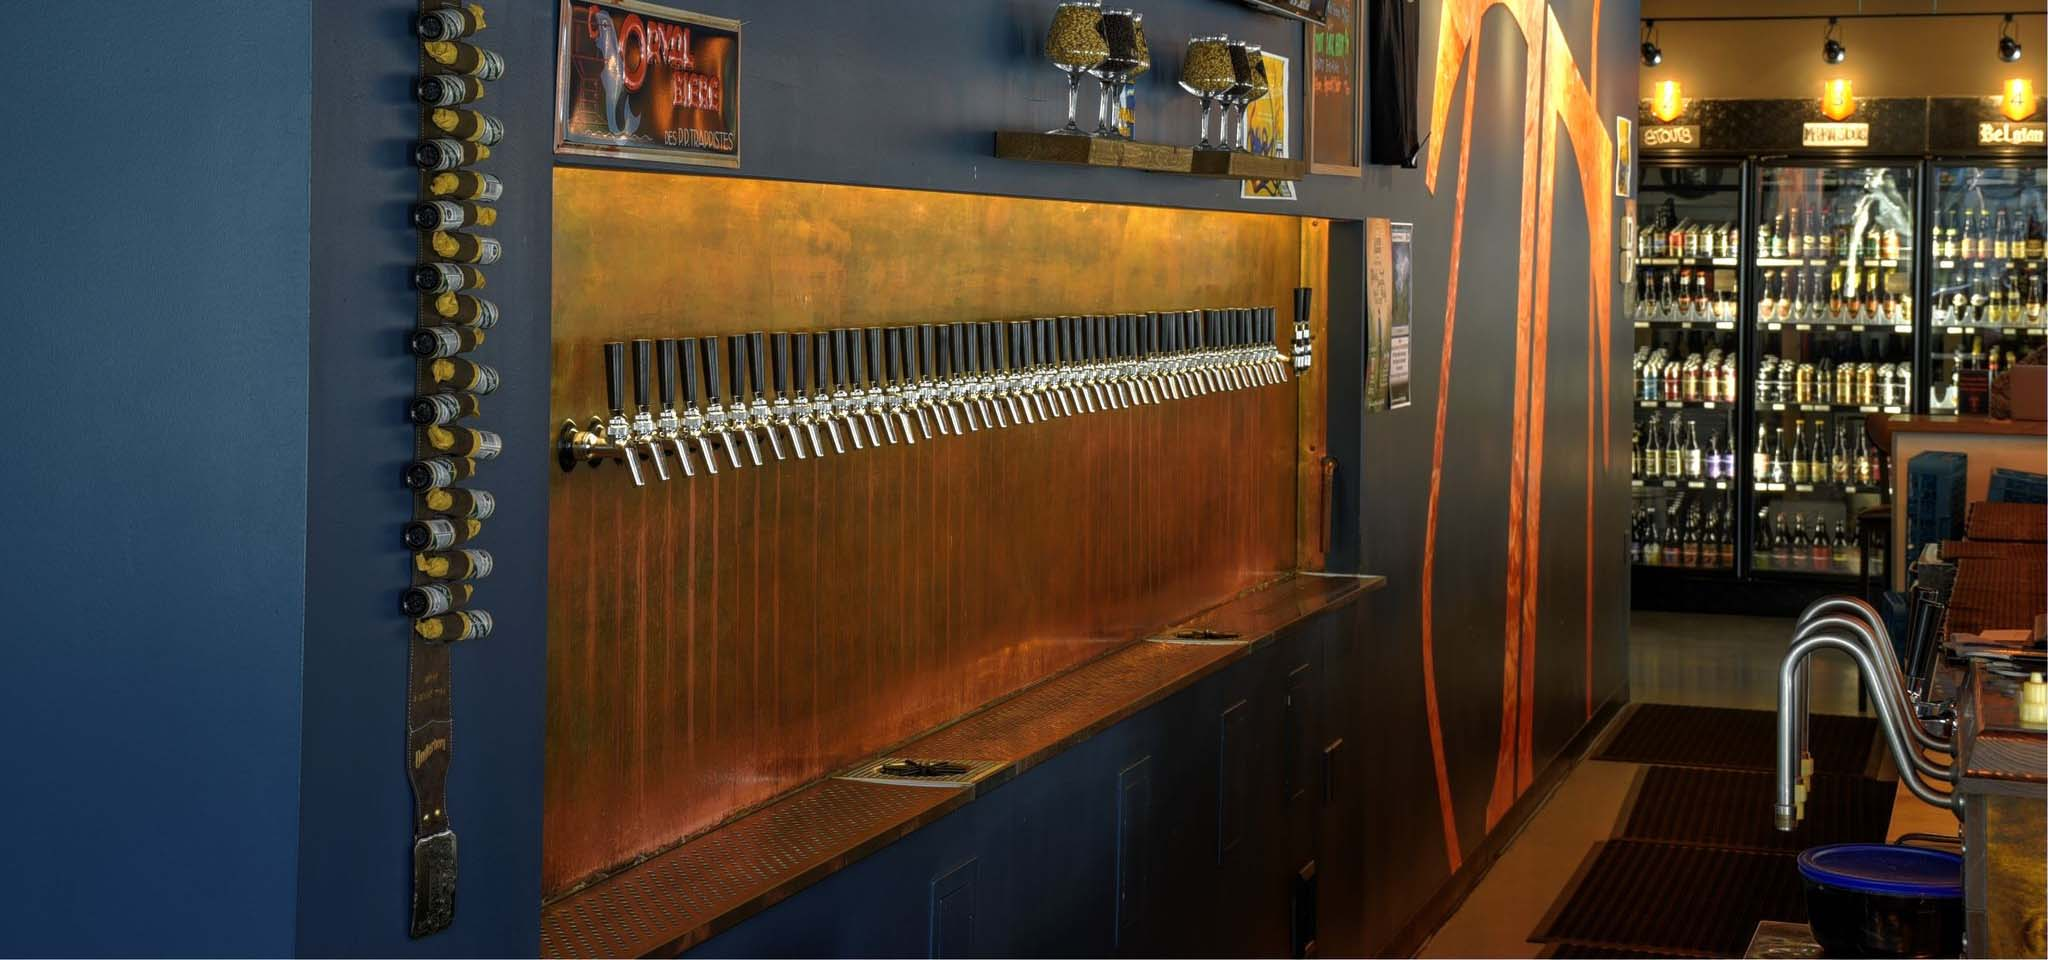 Beer taps in a row at a bar.